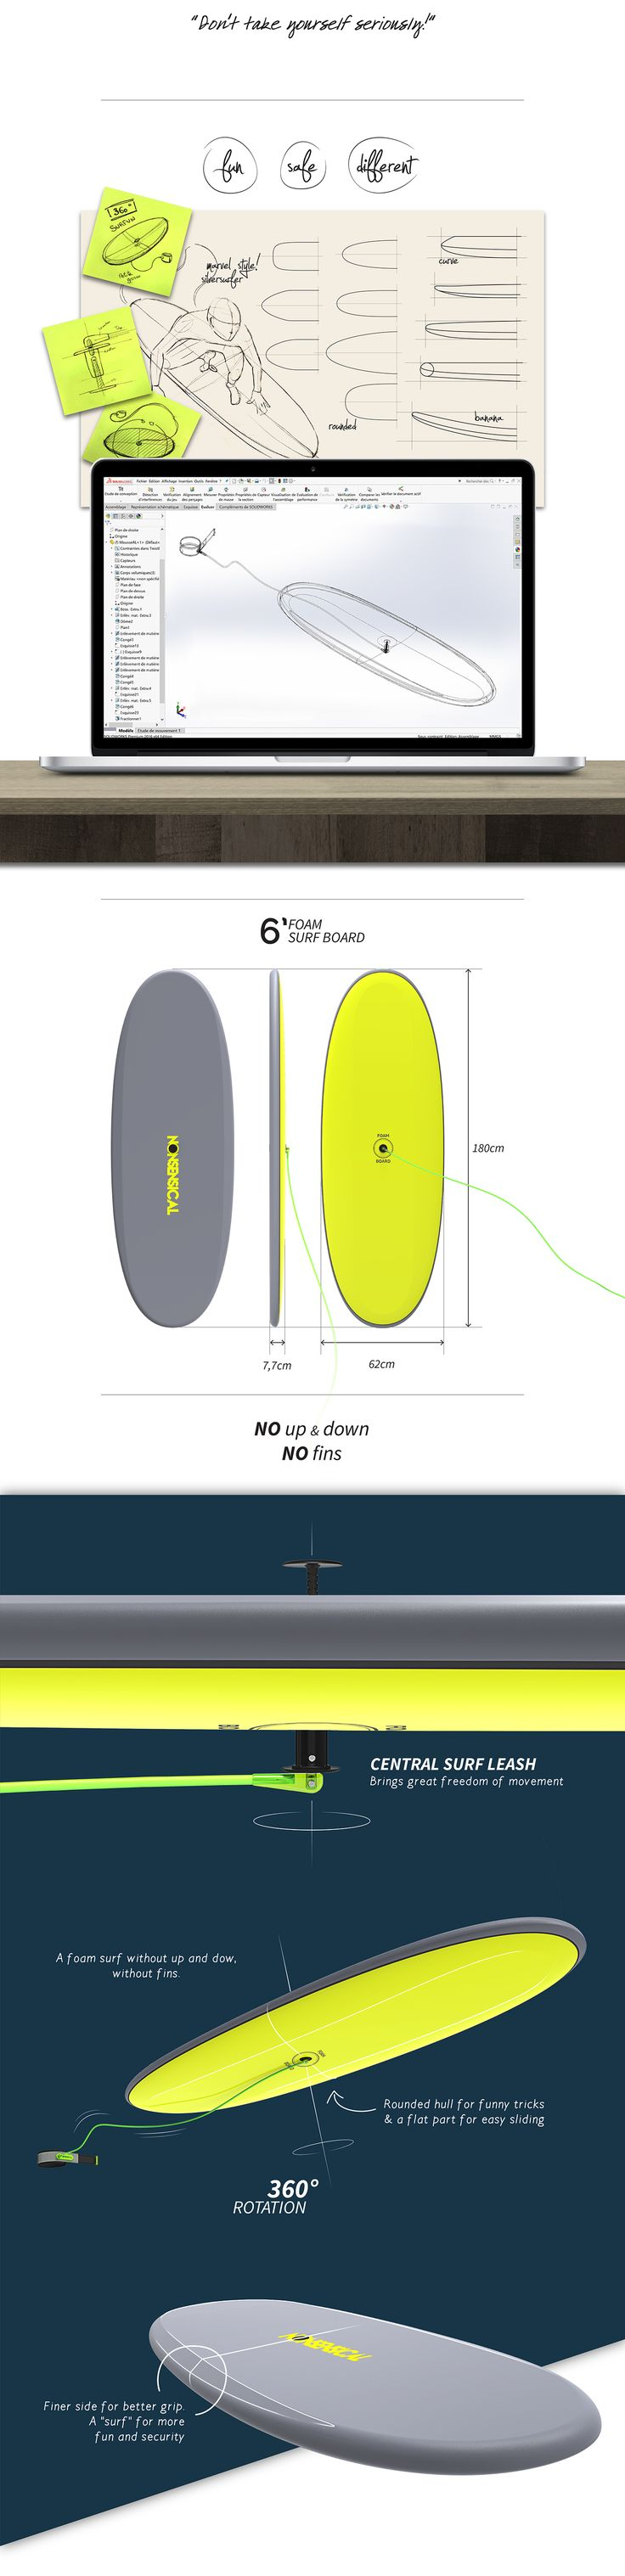 NONSENSICAL - foam surfboard - funny product ! on Behance